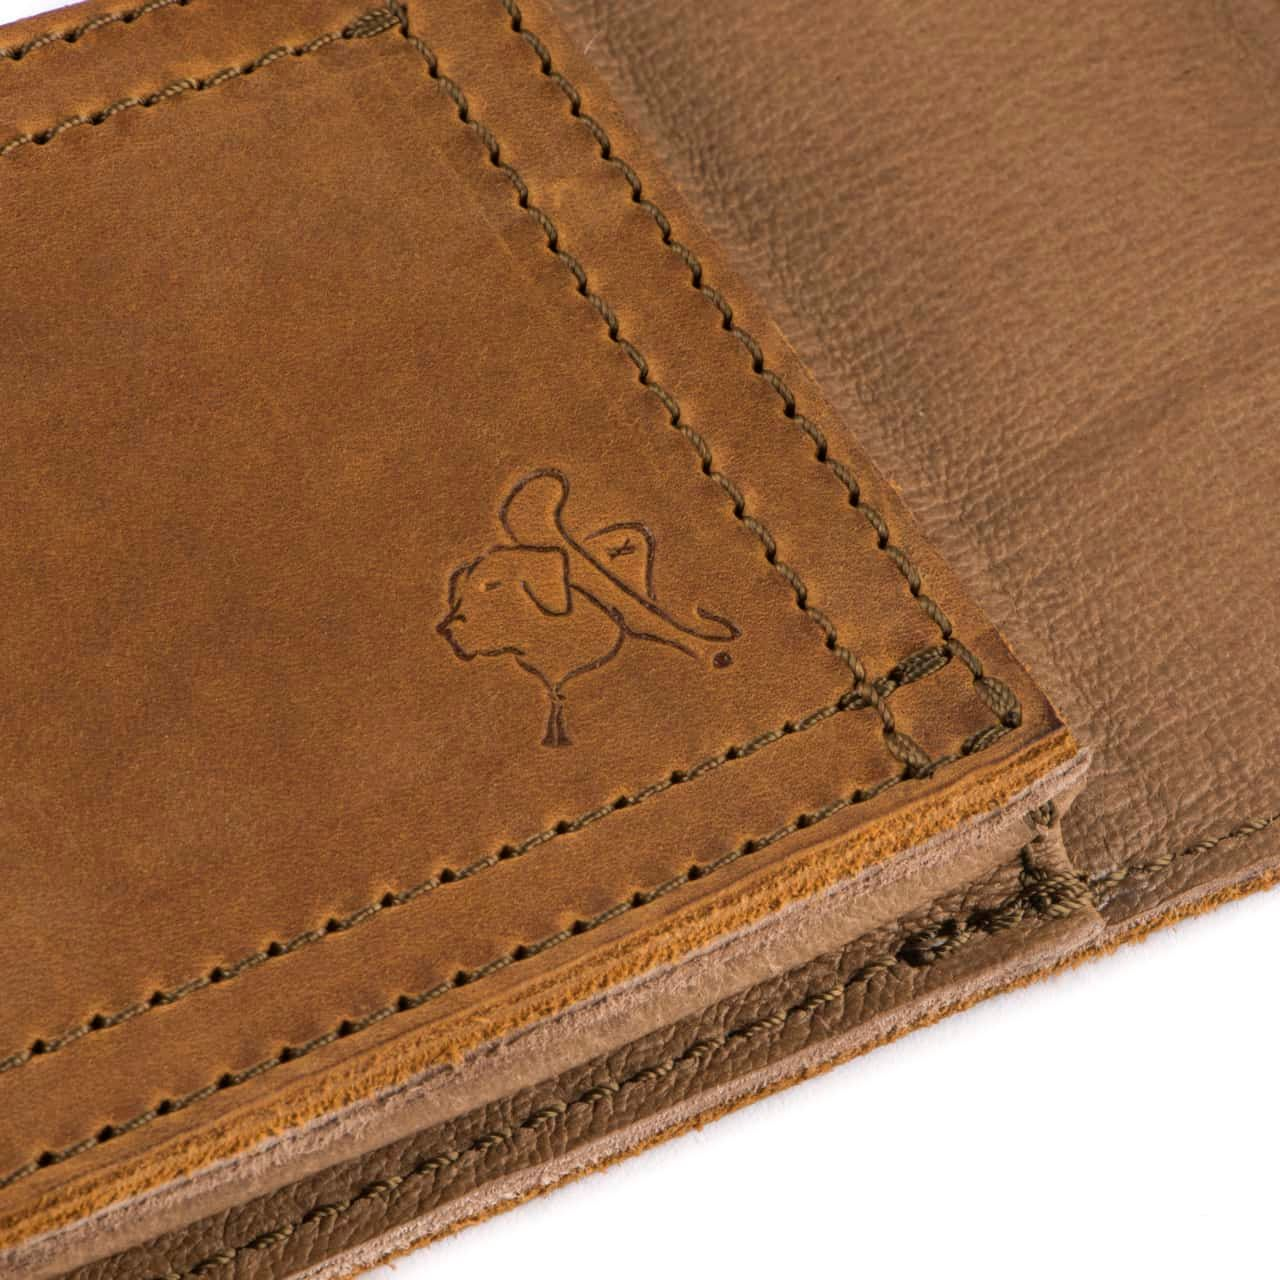 Leather Tablet Note Holder Zoomed in on Blue the Dog Embossment in the Color Tobacco